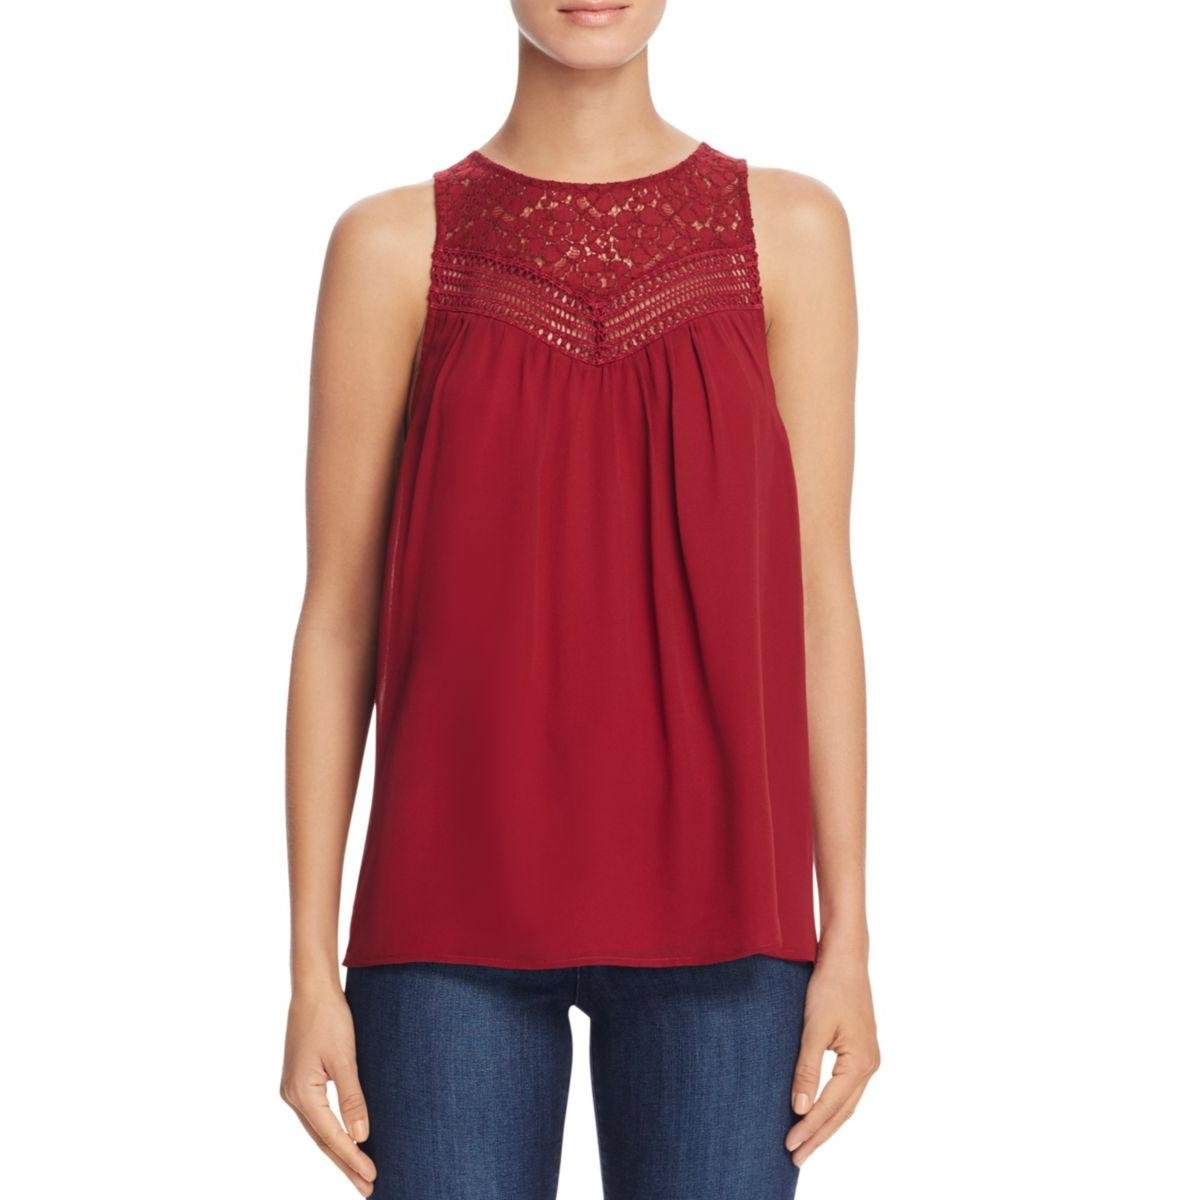 Joie Womens Crochet-Trim Lace-Trim Casual Top Red XXS